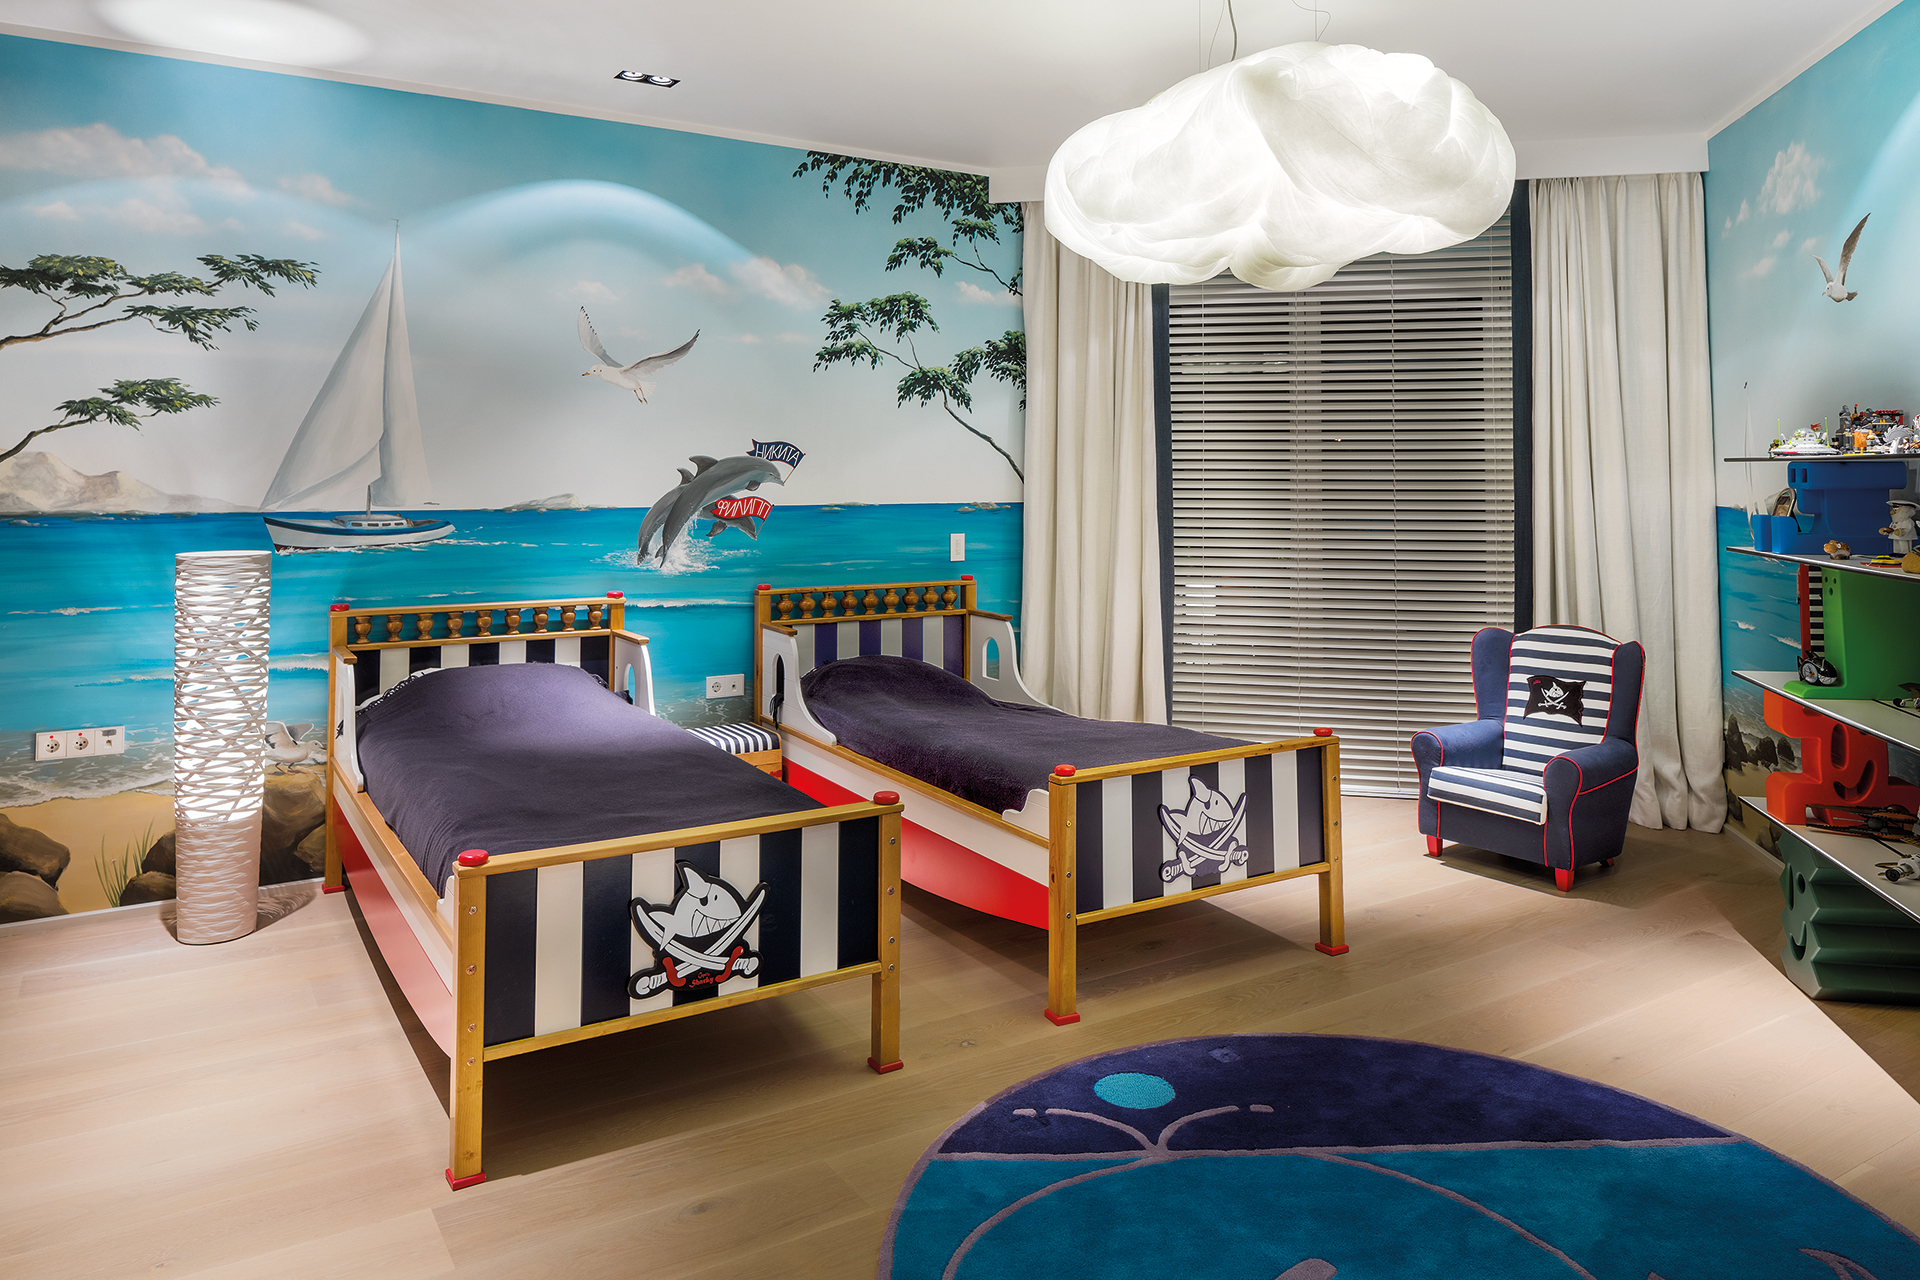 Sea themed wallpaper adorns the walls surrounding pirate themed beds